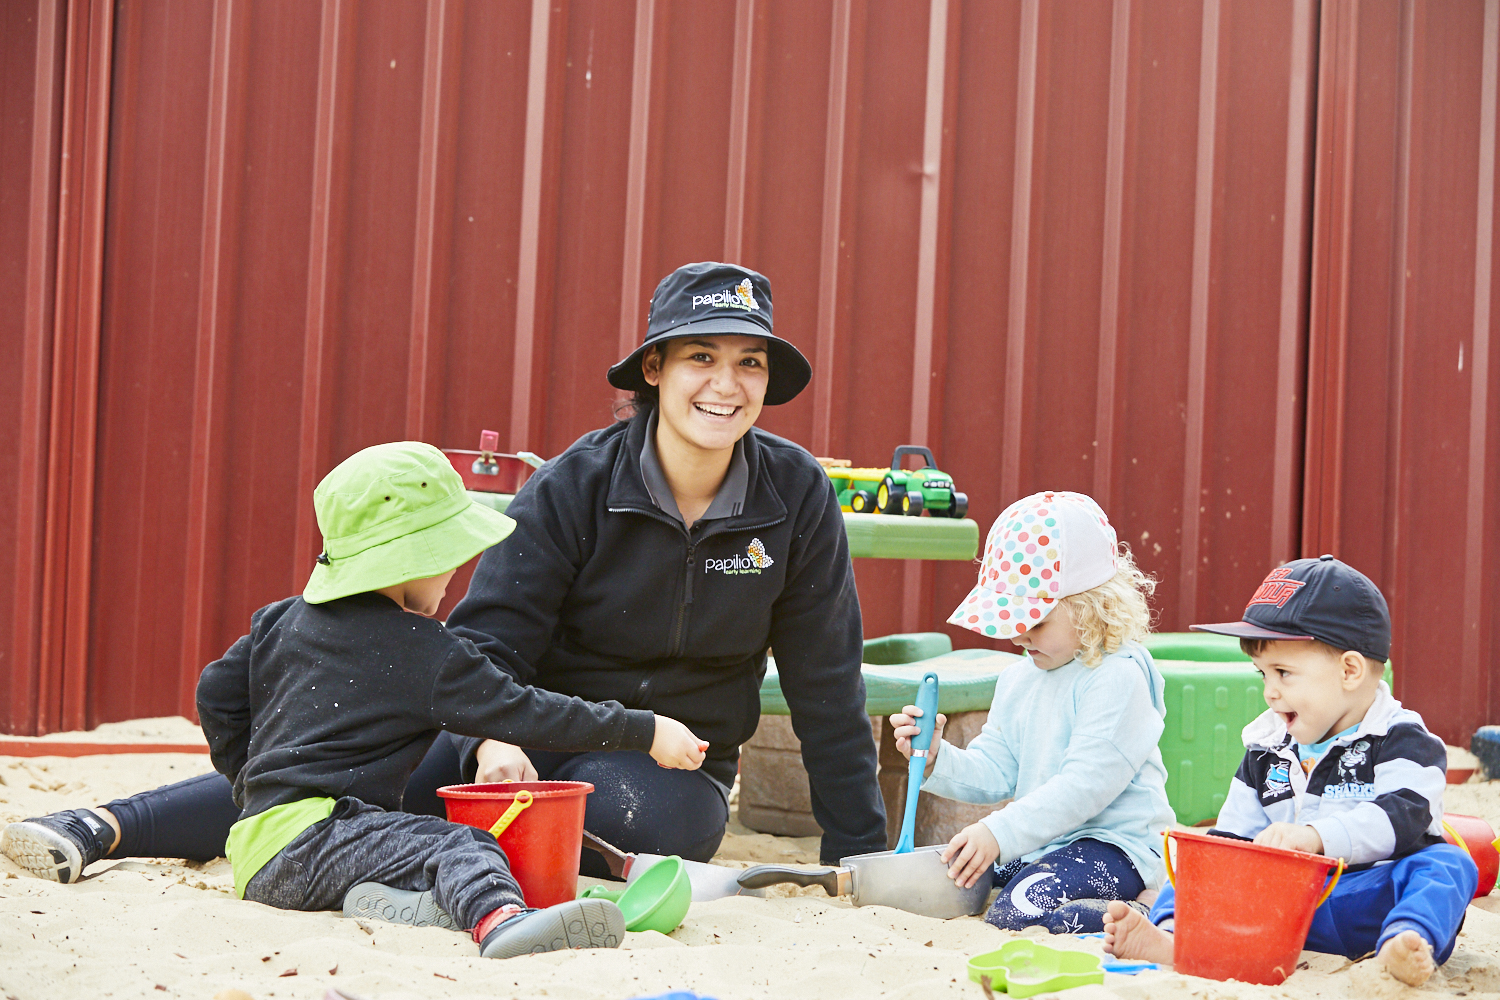 Child care educator with group of children playing in outdoor sand pit at Papilio Ingleburn